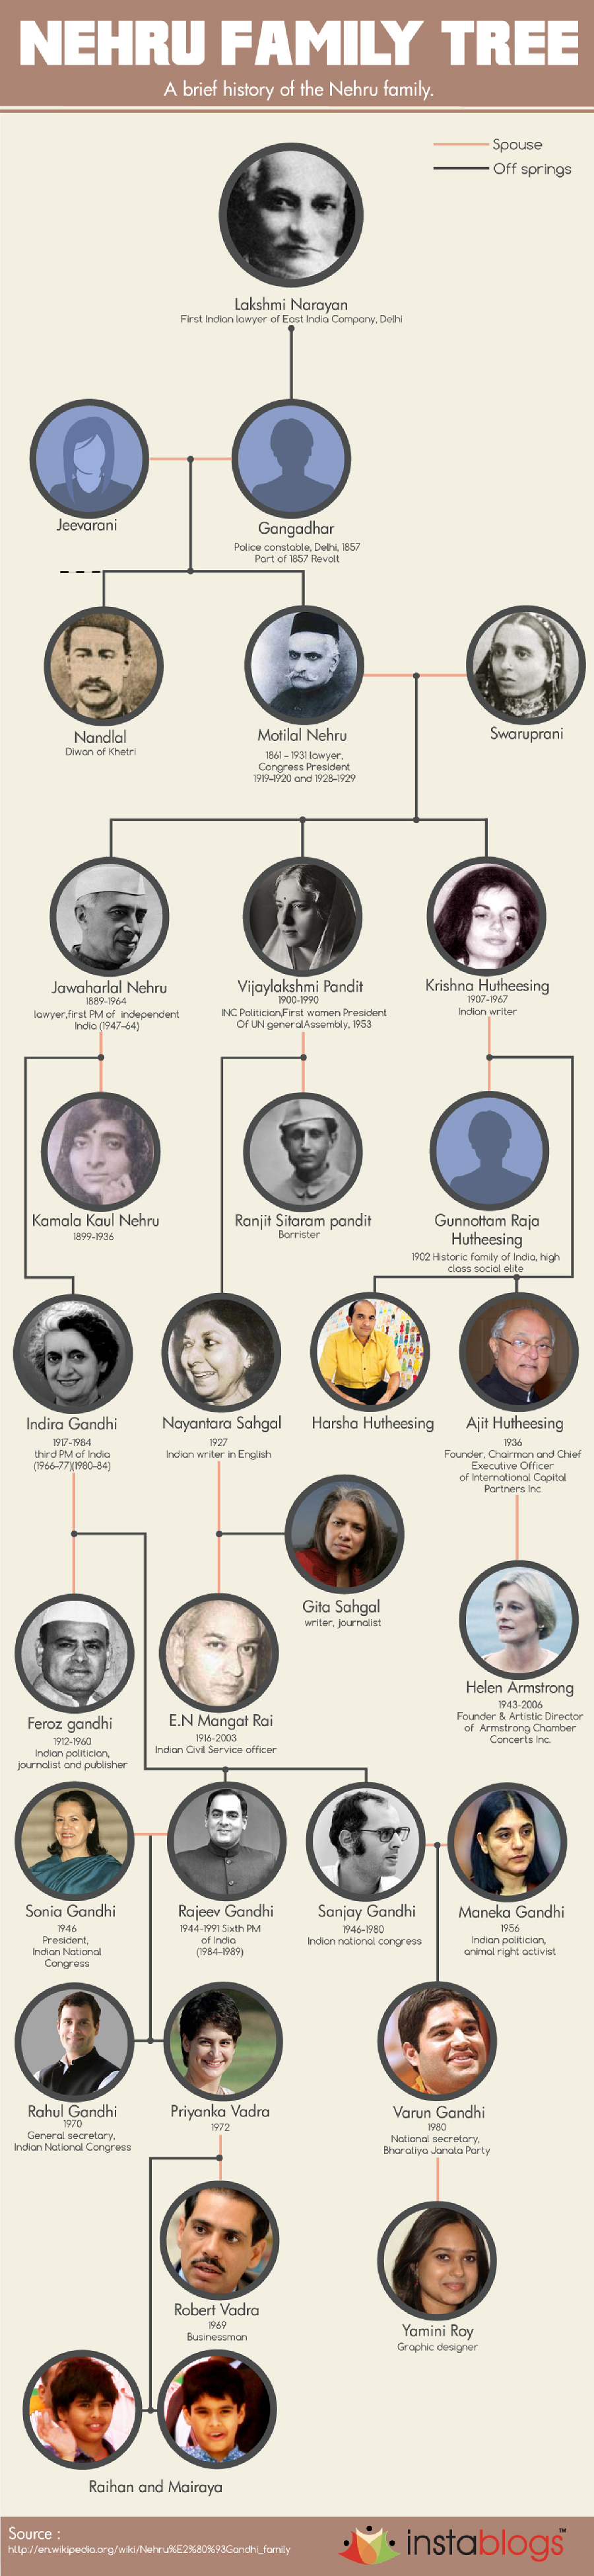 Nehru family tree